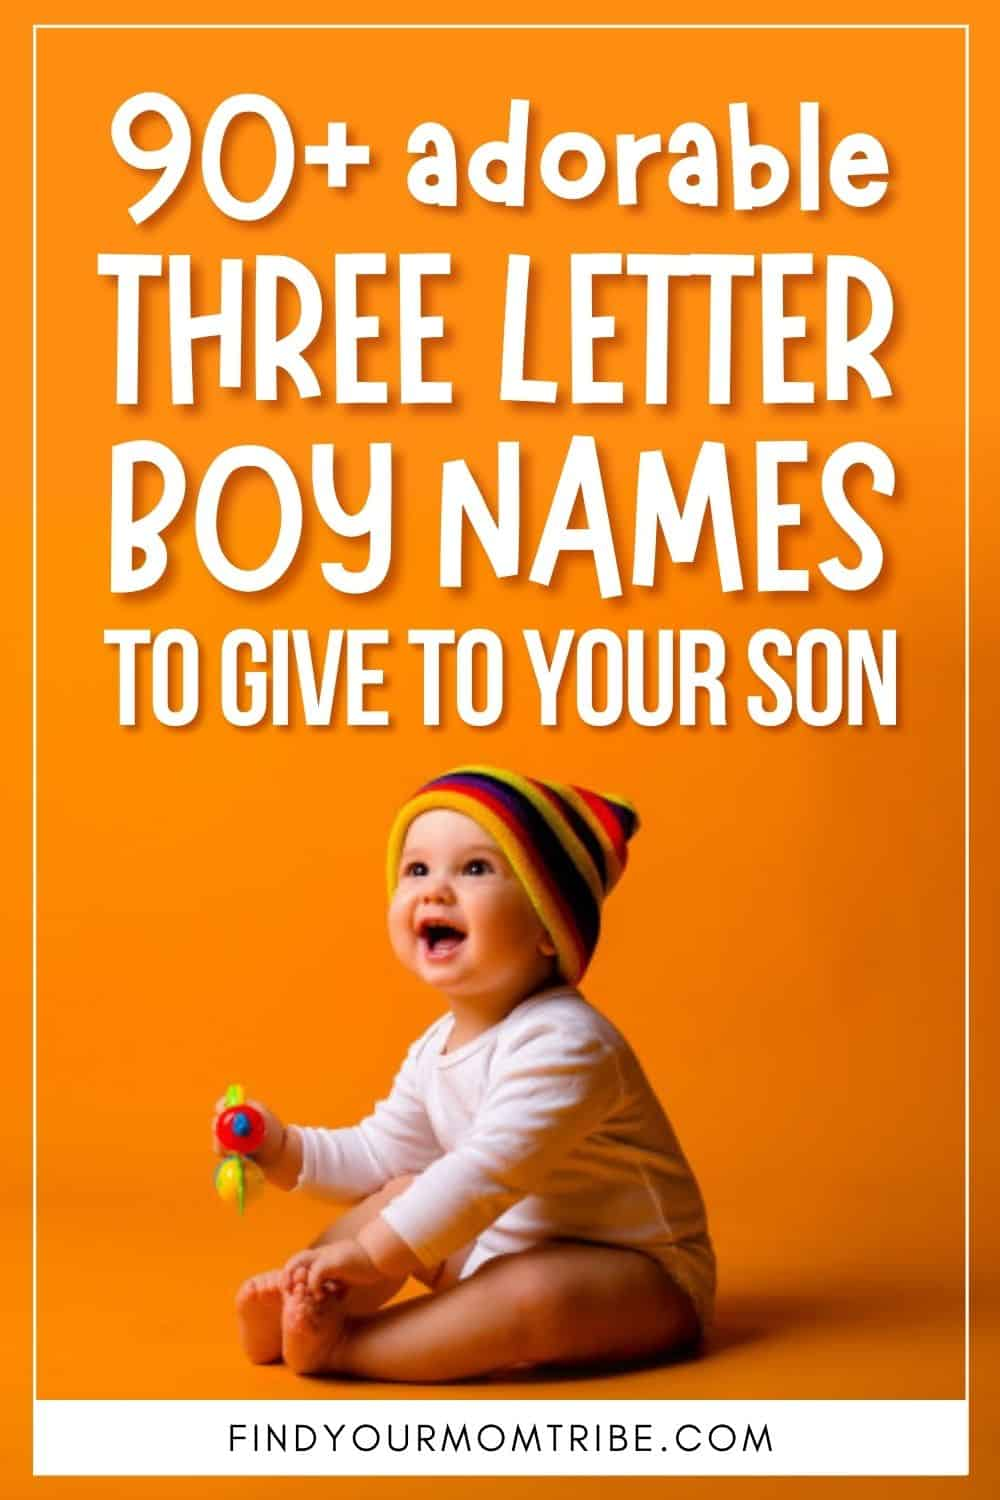 90+ Adorable Three Letter Boy Names To Give To Your Son Pinterest